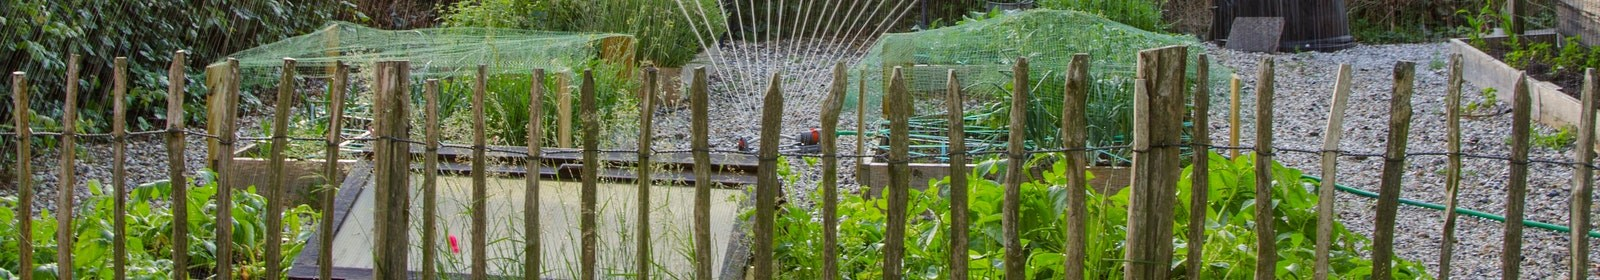 DIY Garden Irrigation Systems: A How-To Guide